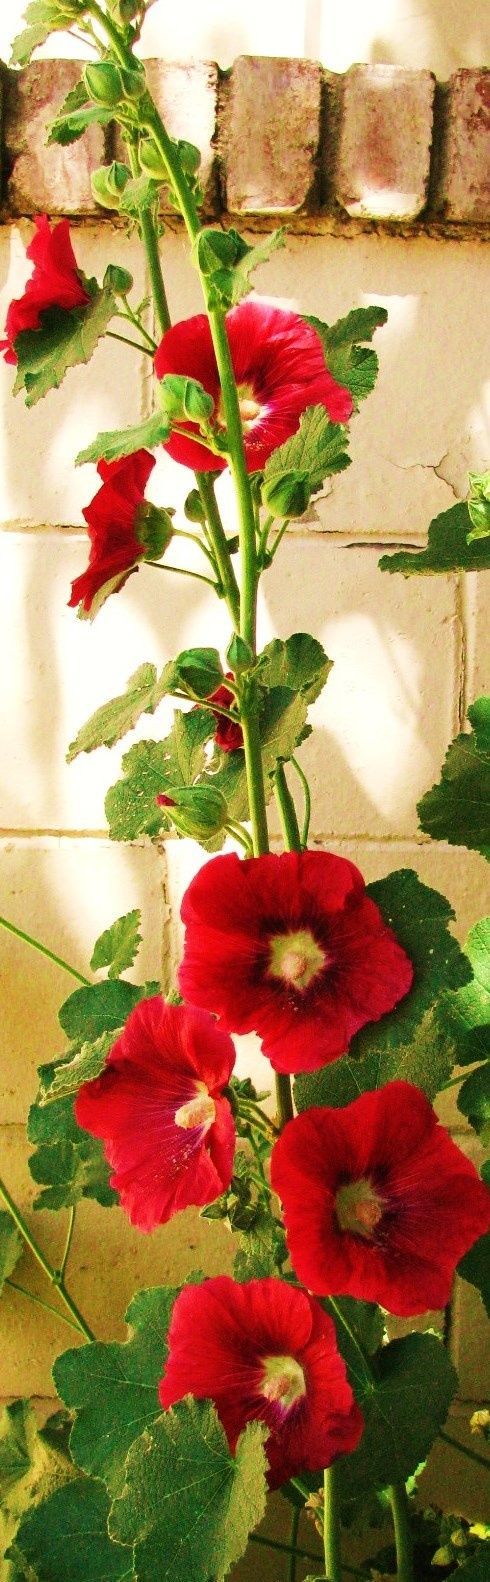 Hollyhocks - by Delightfully Manic